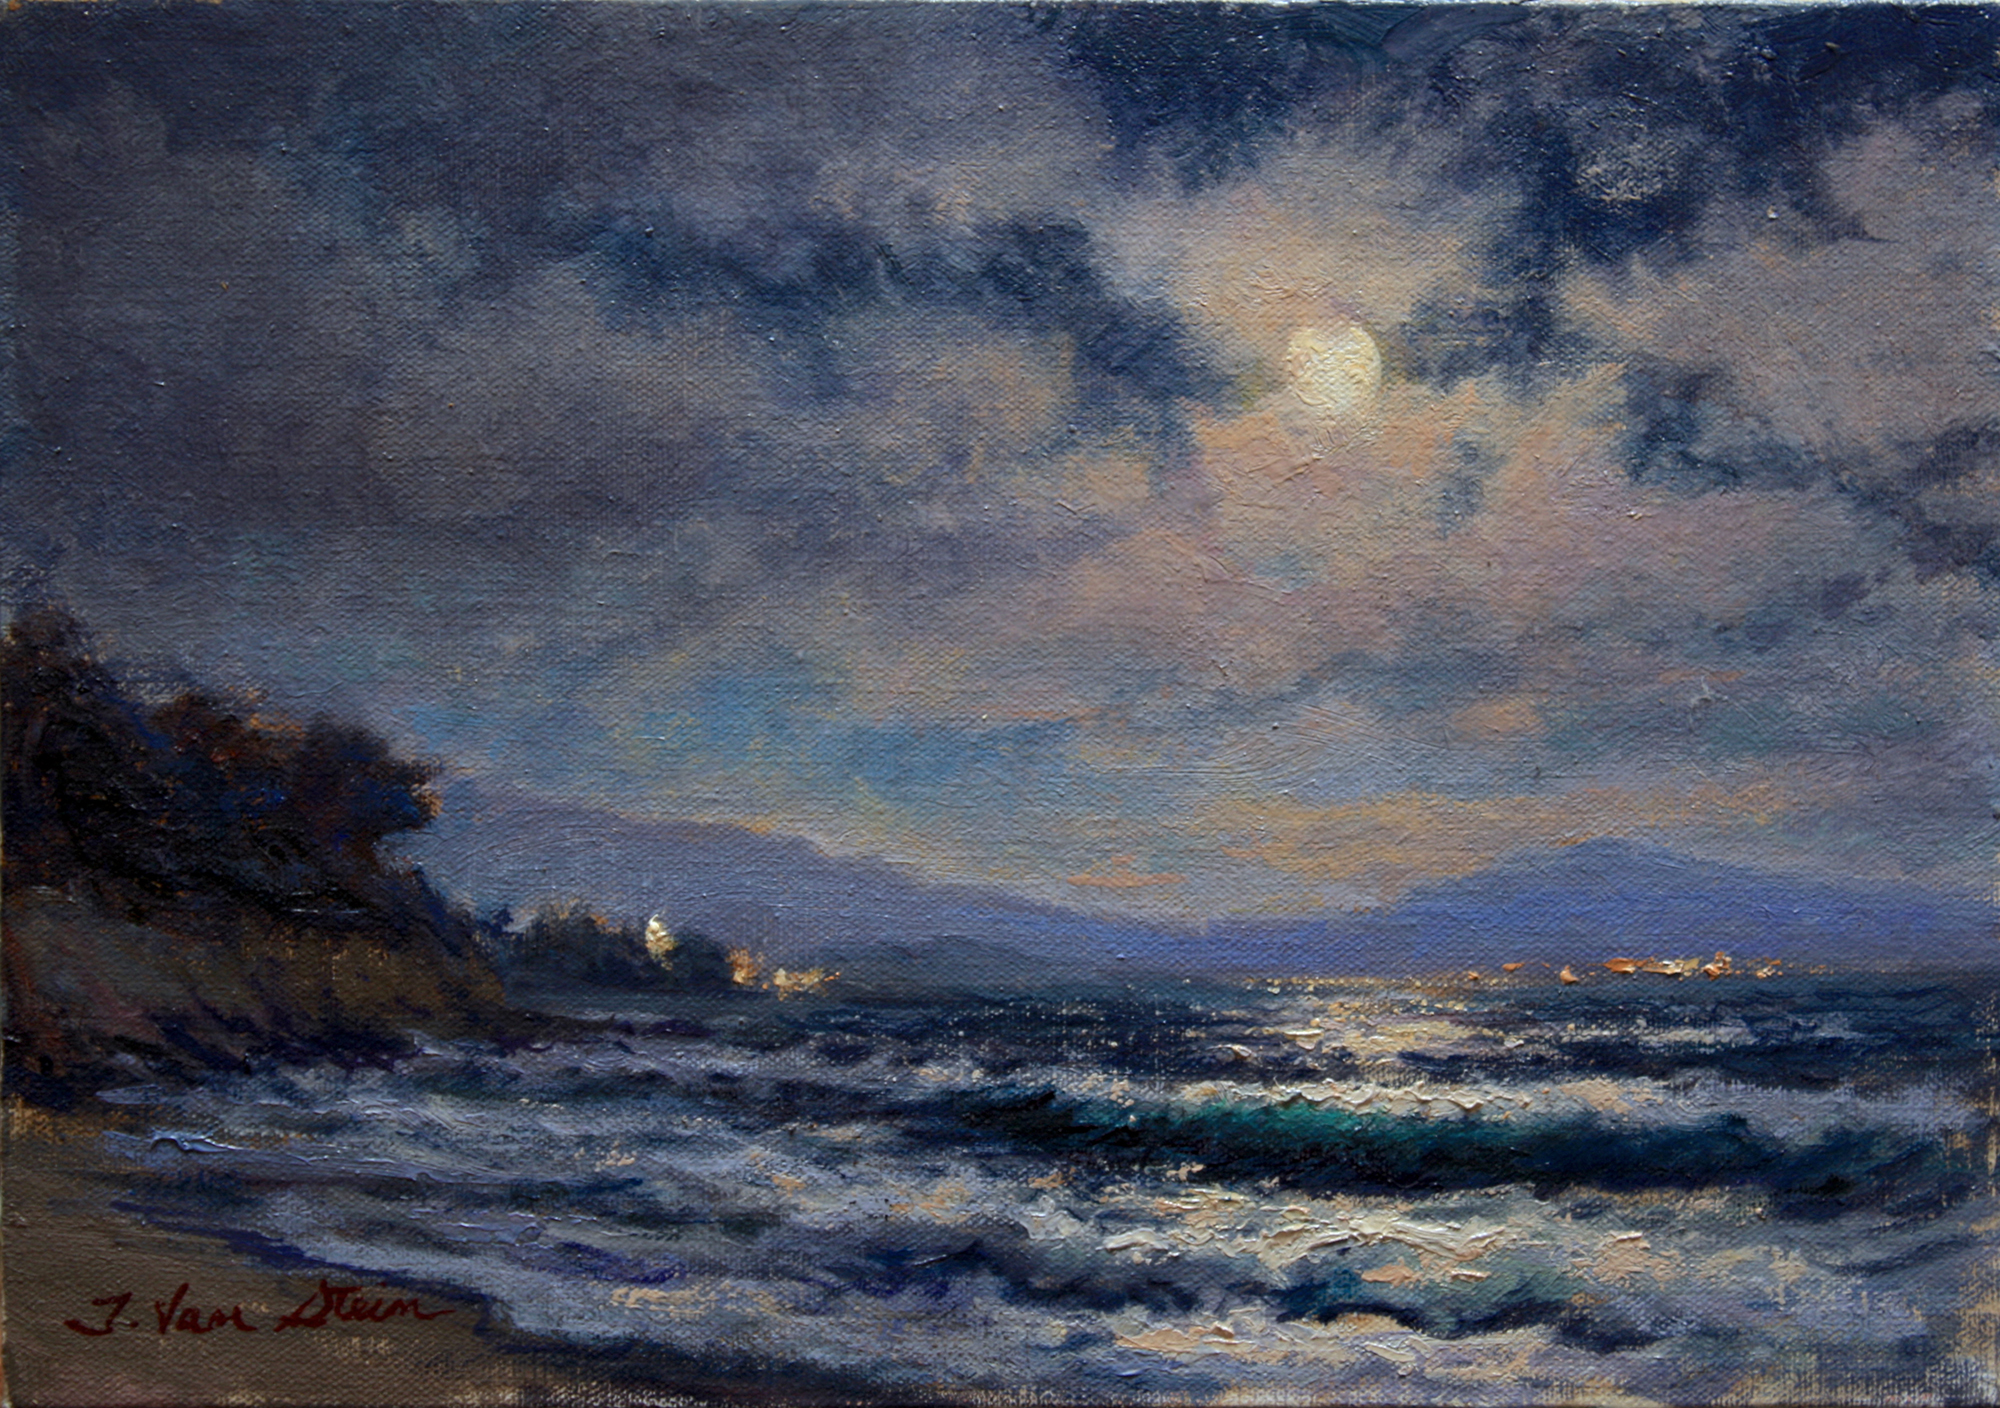 Moonrise from East Beach,  10x14, oil on canvas, 2019